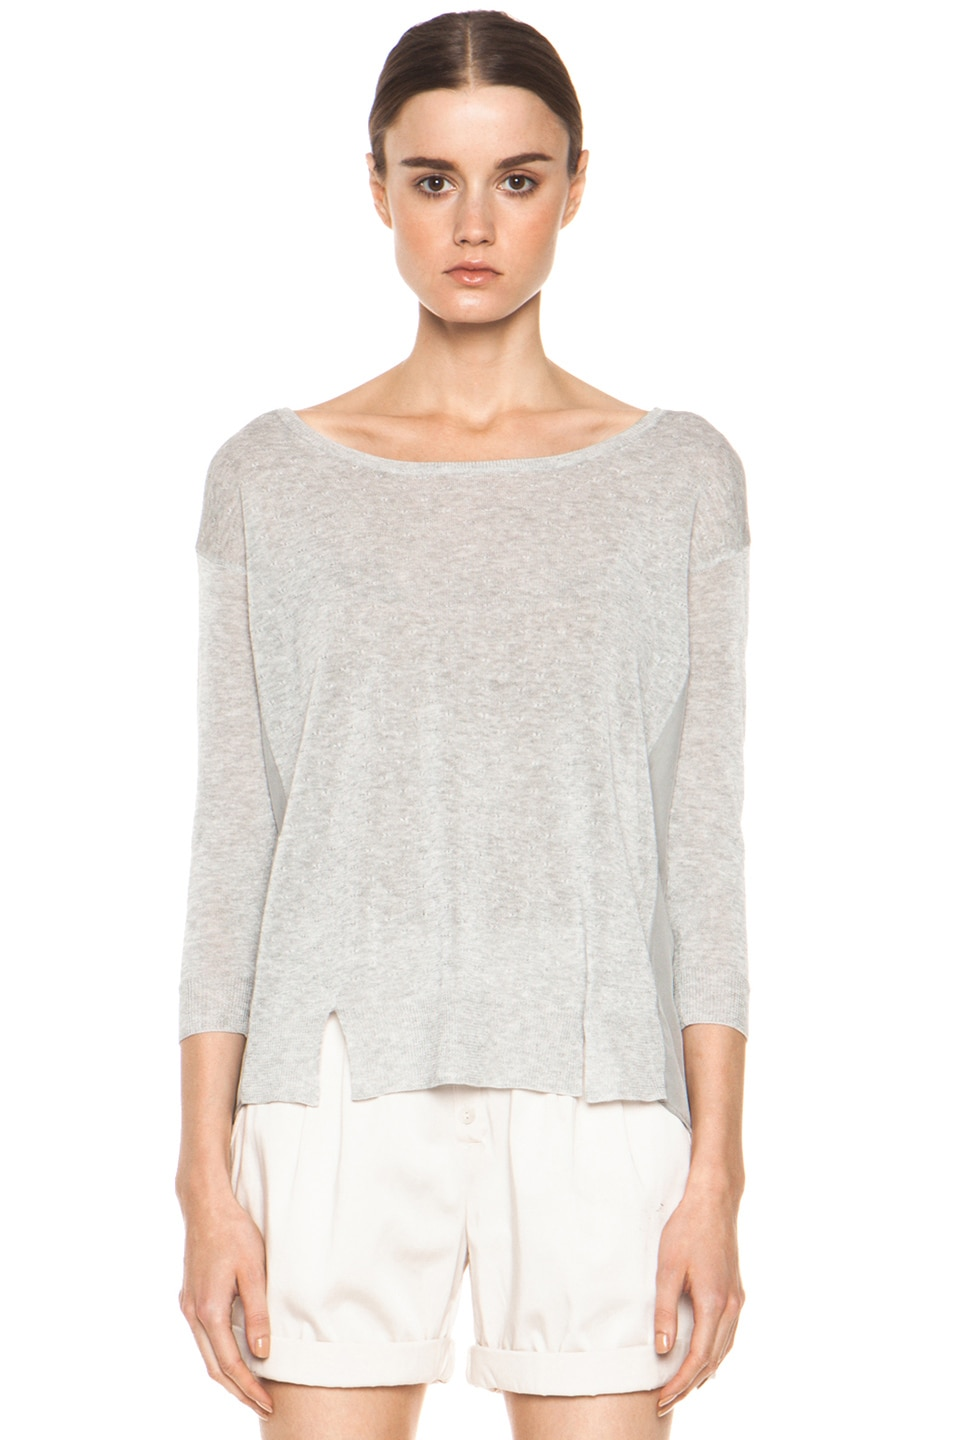 Image 1 of Girl. by Band of Outsiders Malibu Basic Sweater in Grey Heather